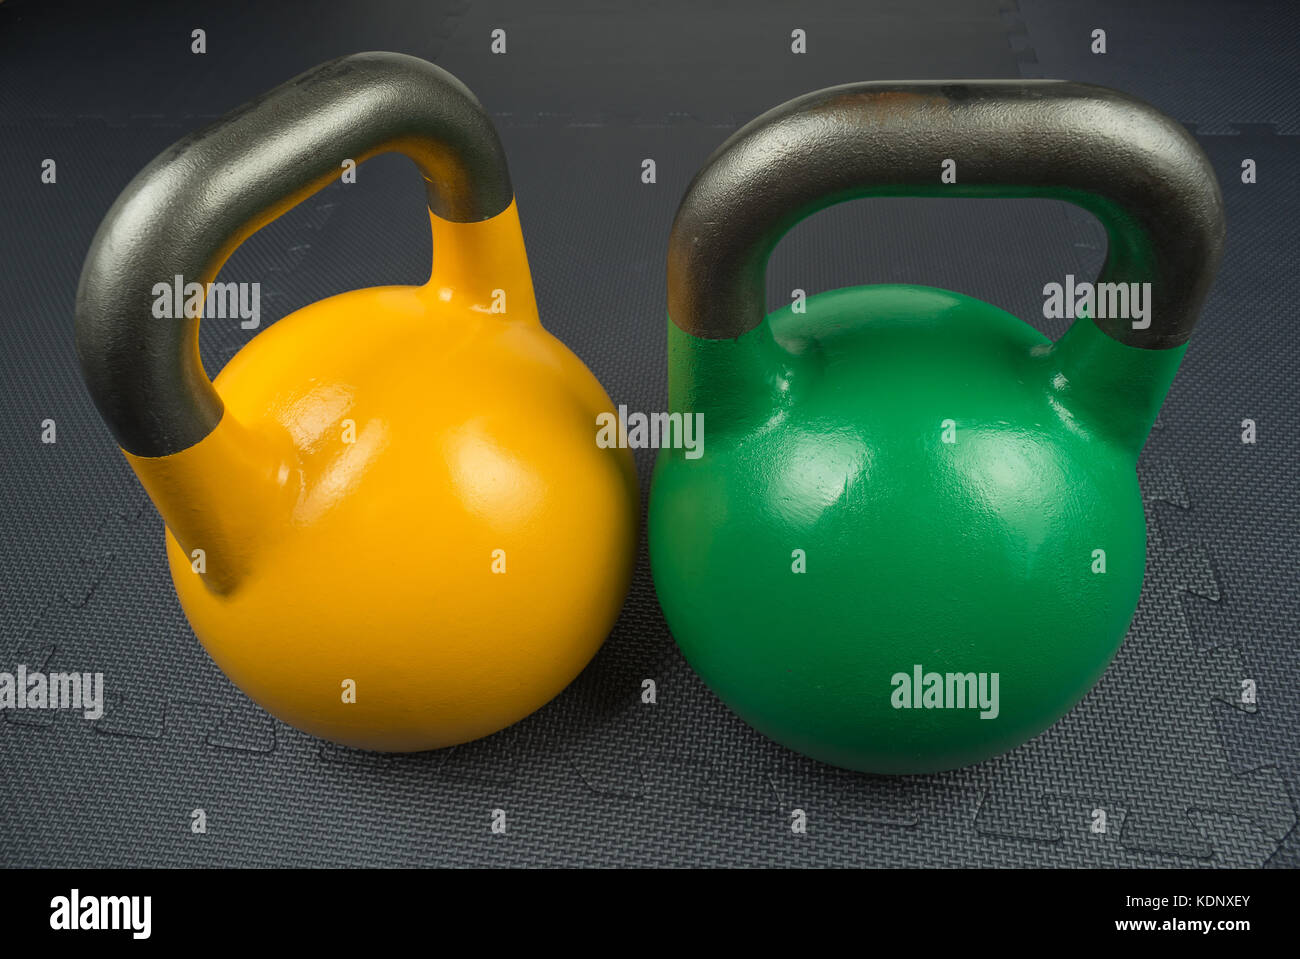 Two competition kettlebells on a fitness studio gym floor. Yellow competition kettlebells weigh 16kg. Green competition - Stock Image